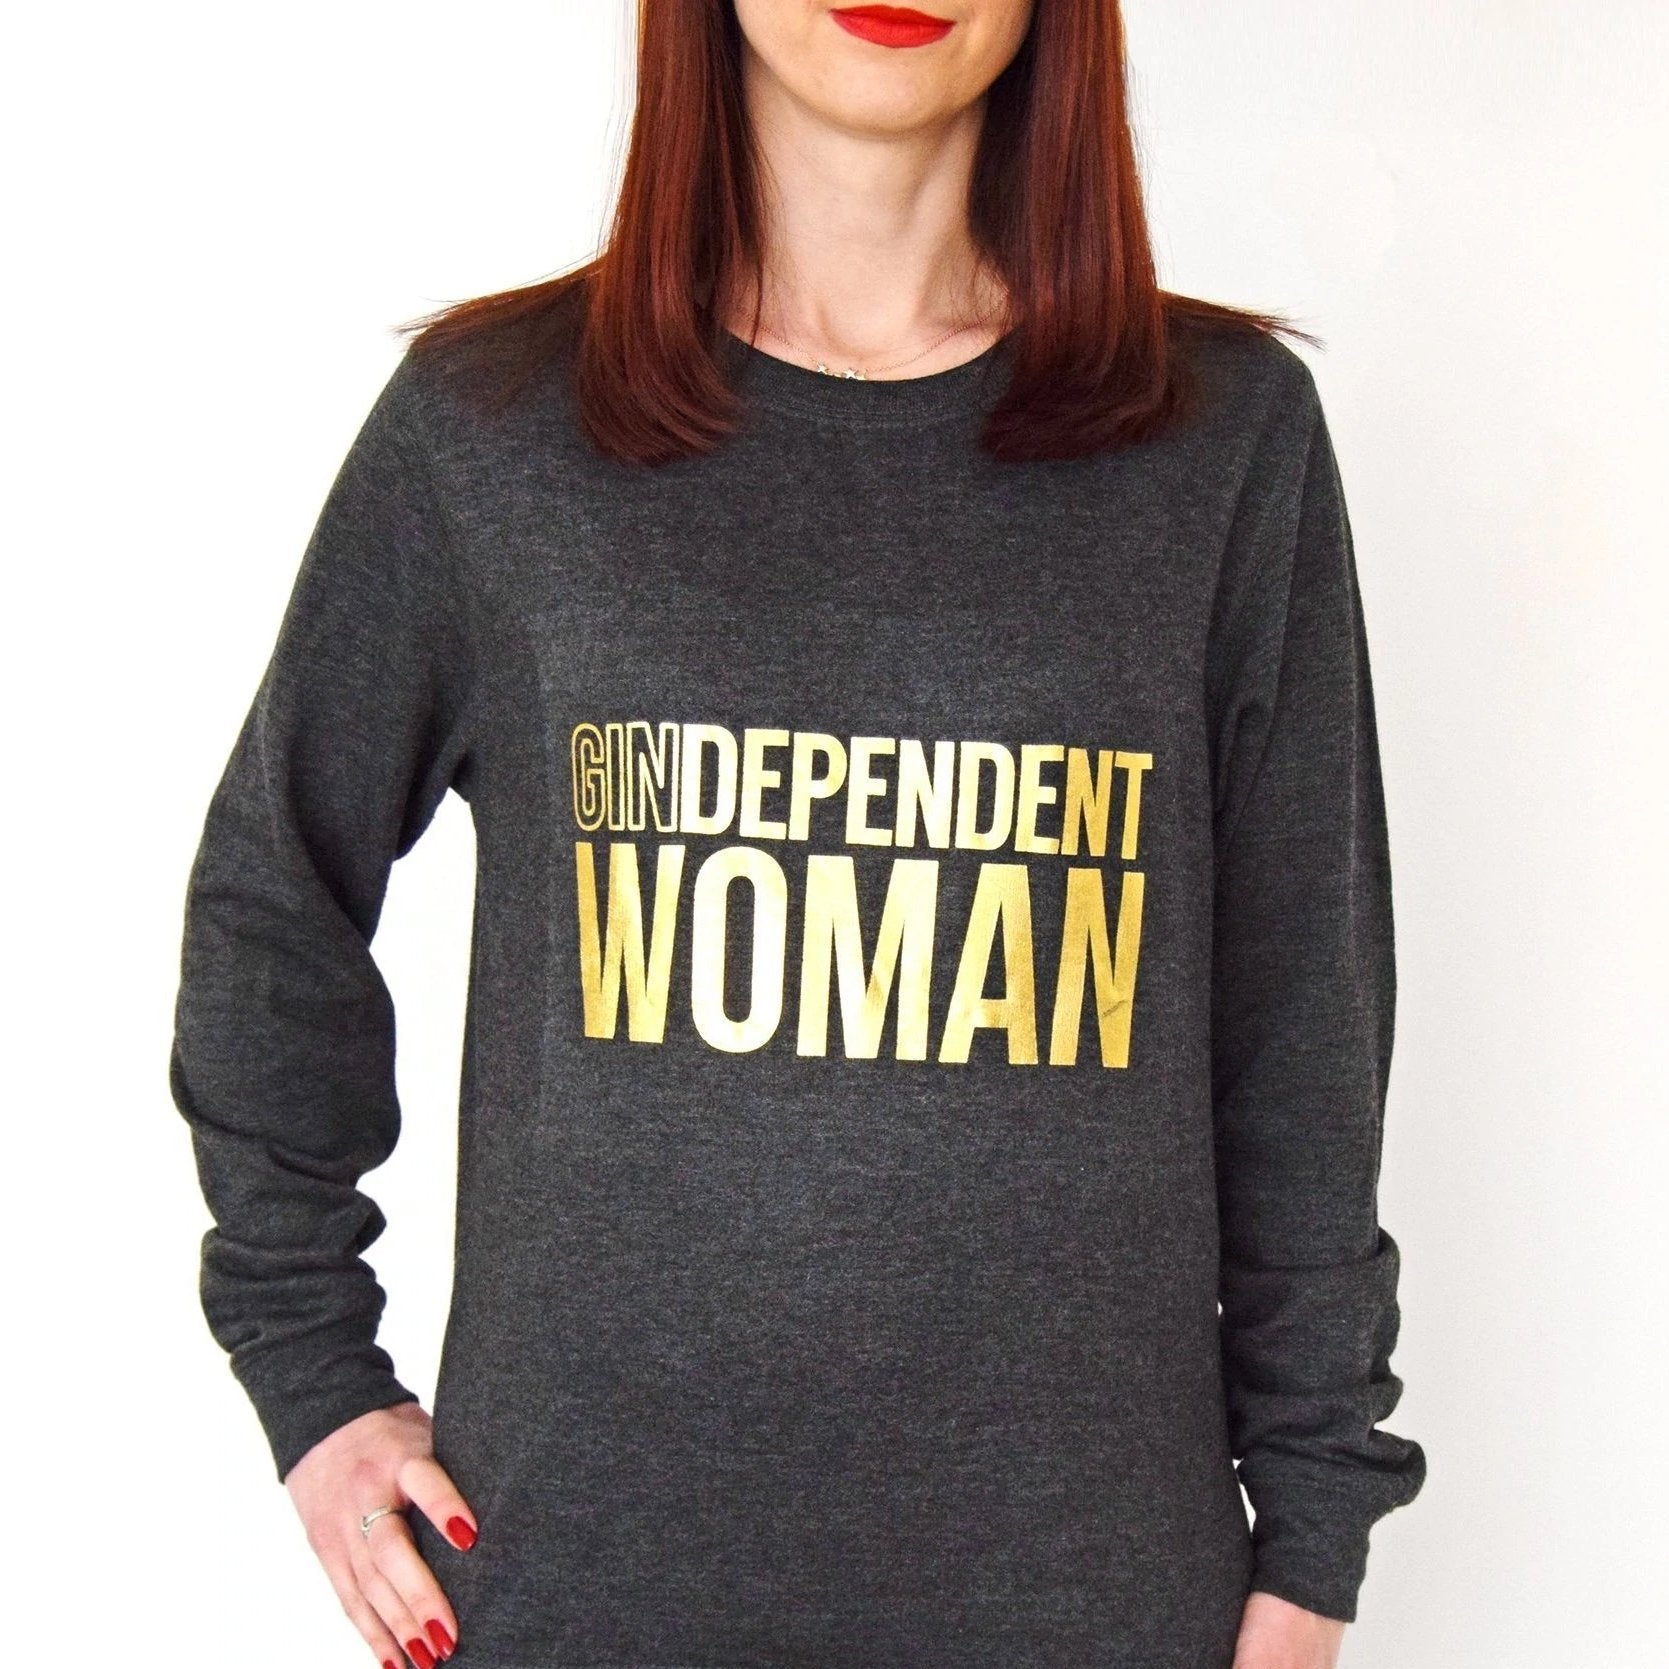 'Gindependent Woman' Women's Sweatshirt-Tote Bag-Of Life & Lemons®